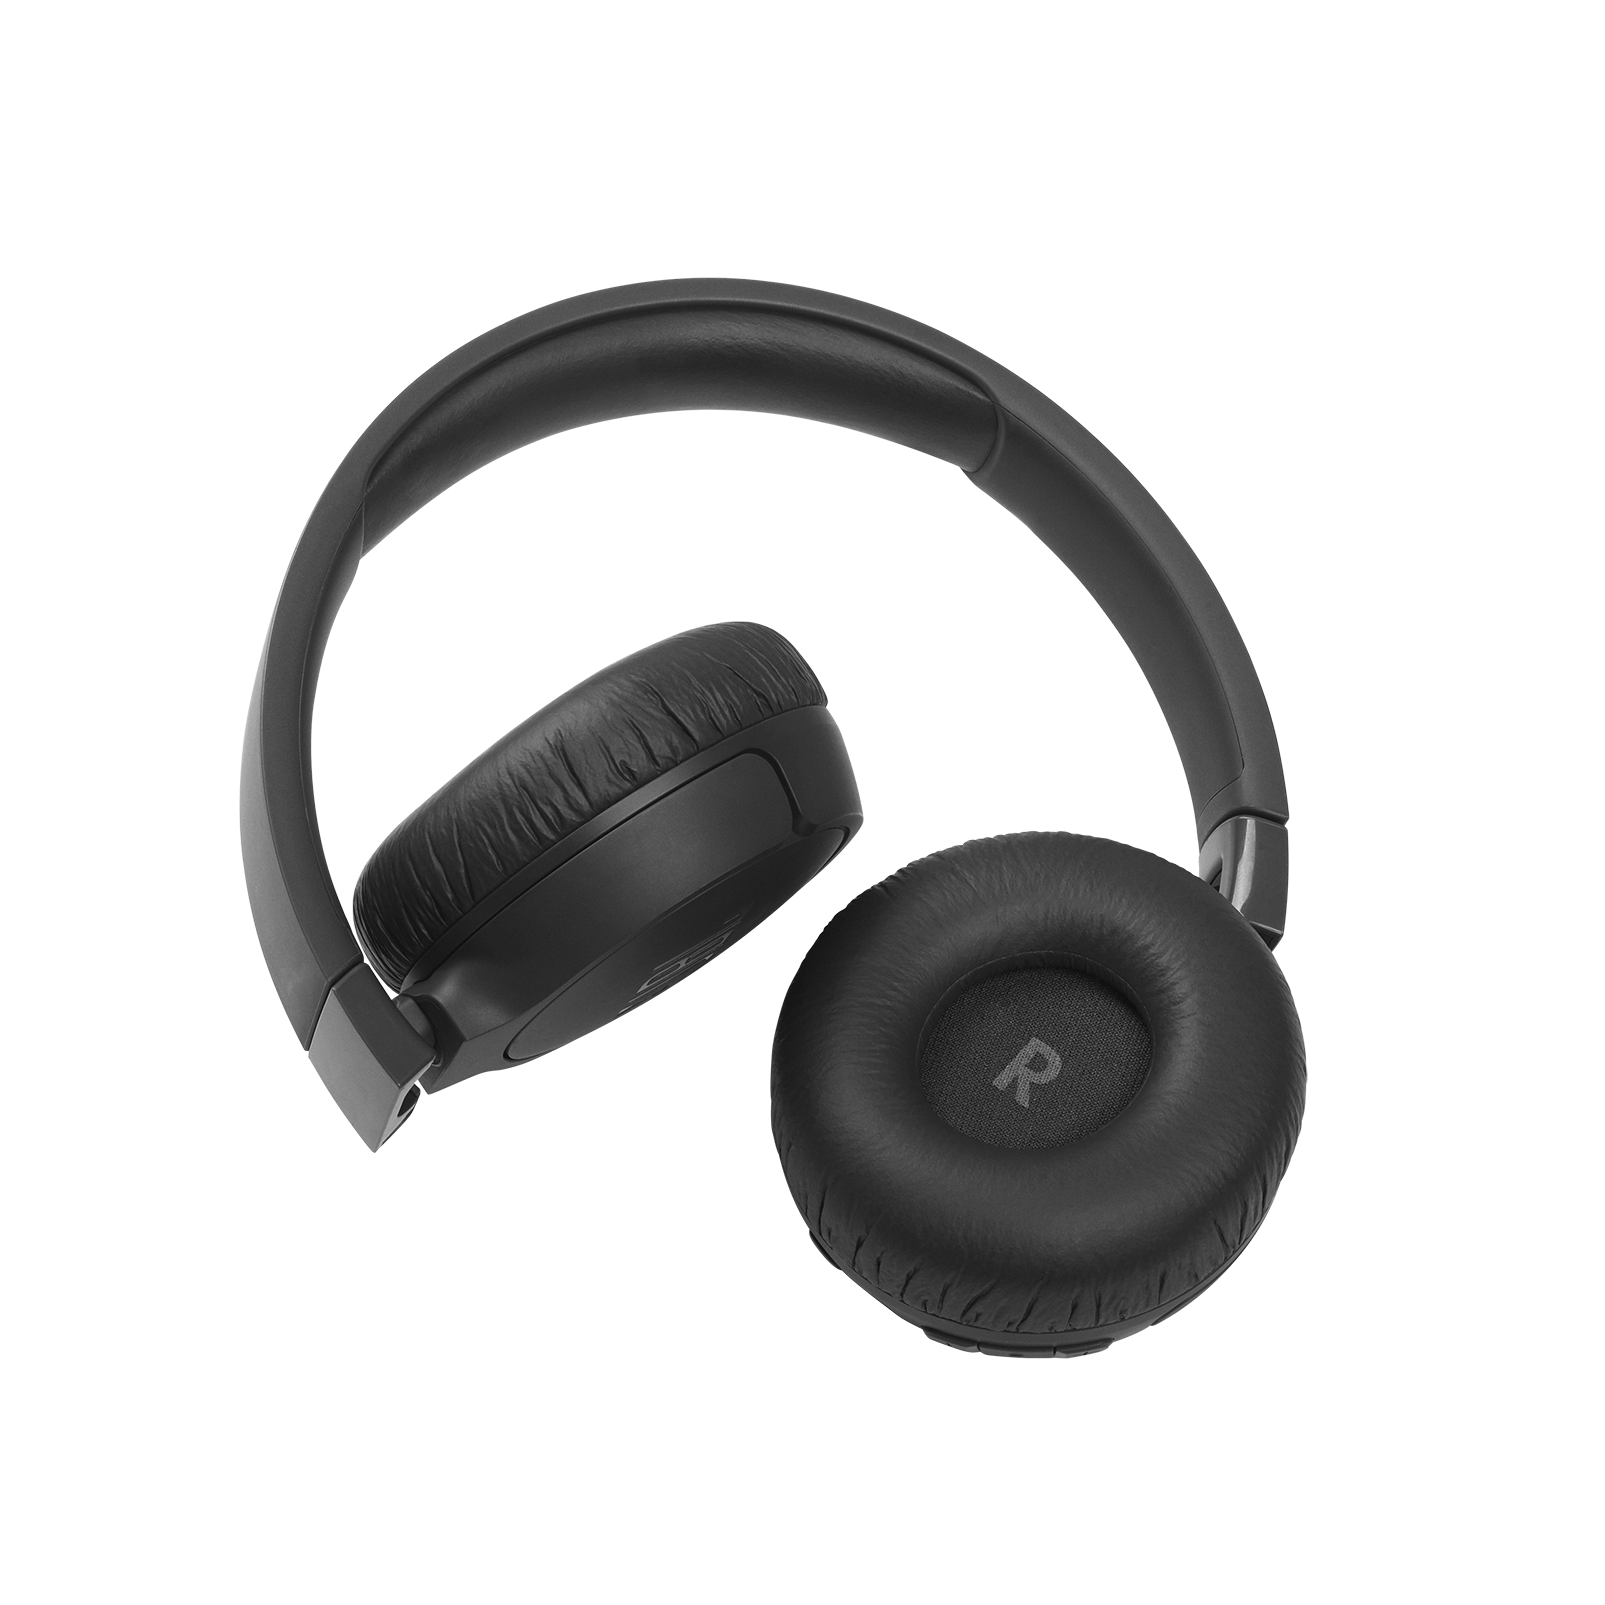 JBL Tune 660NC - Black - Wireless, on-ear, active noise-cancelling headphones. - Detailshot 5